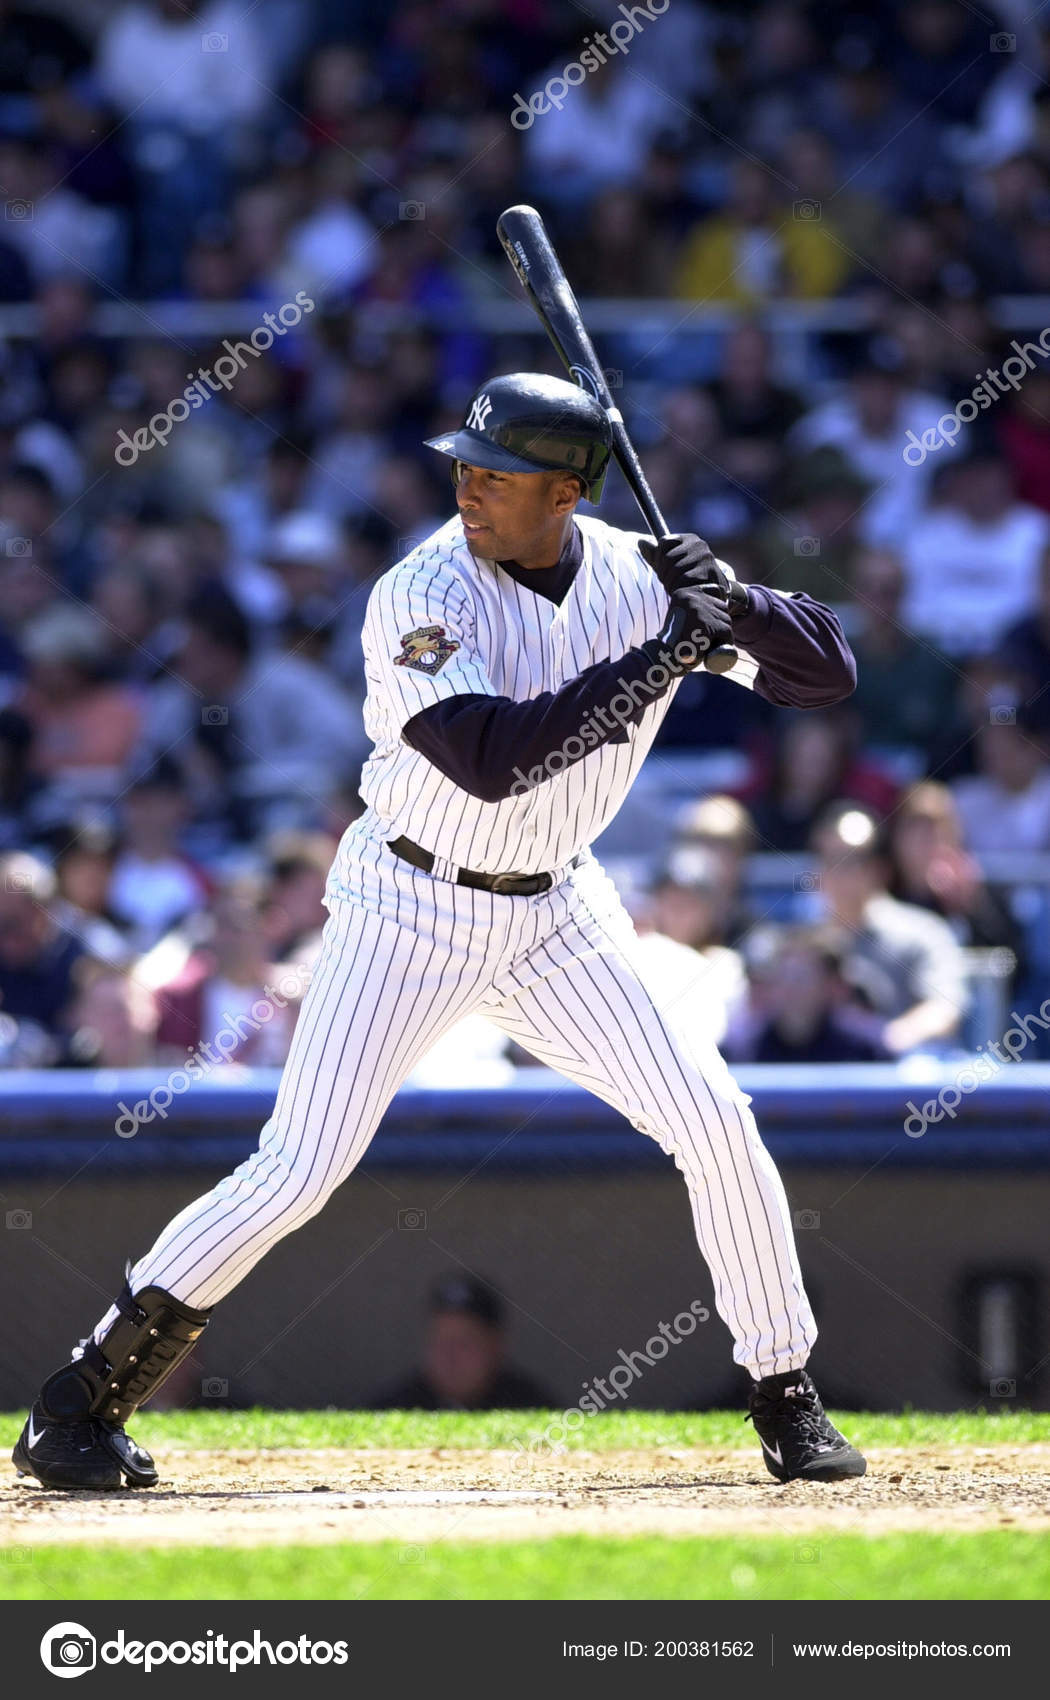 a biography of bernie williams a professional baseball player File - in this feb 1, 2014, file photo, former new york yankee baseball player bernie williams plays the nation anthem on a guitar before an nba basketball game between the miami heat and the new.